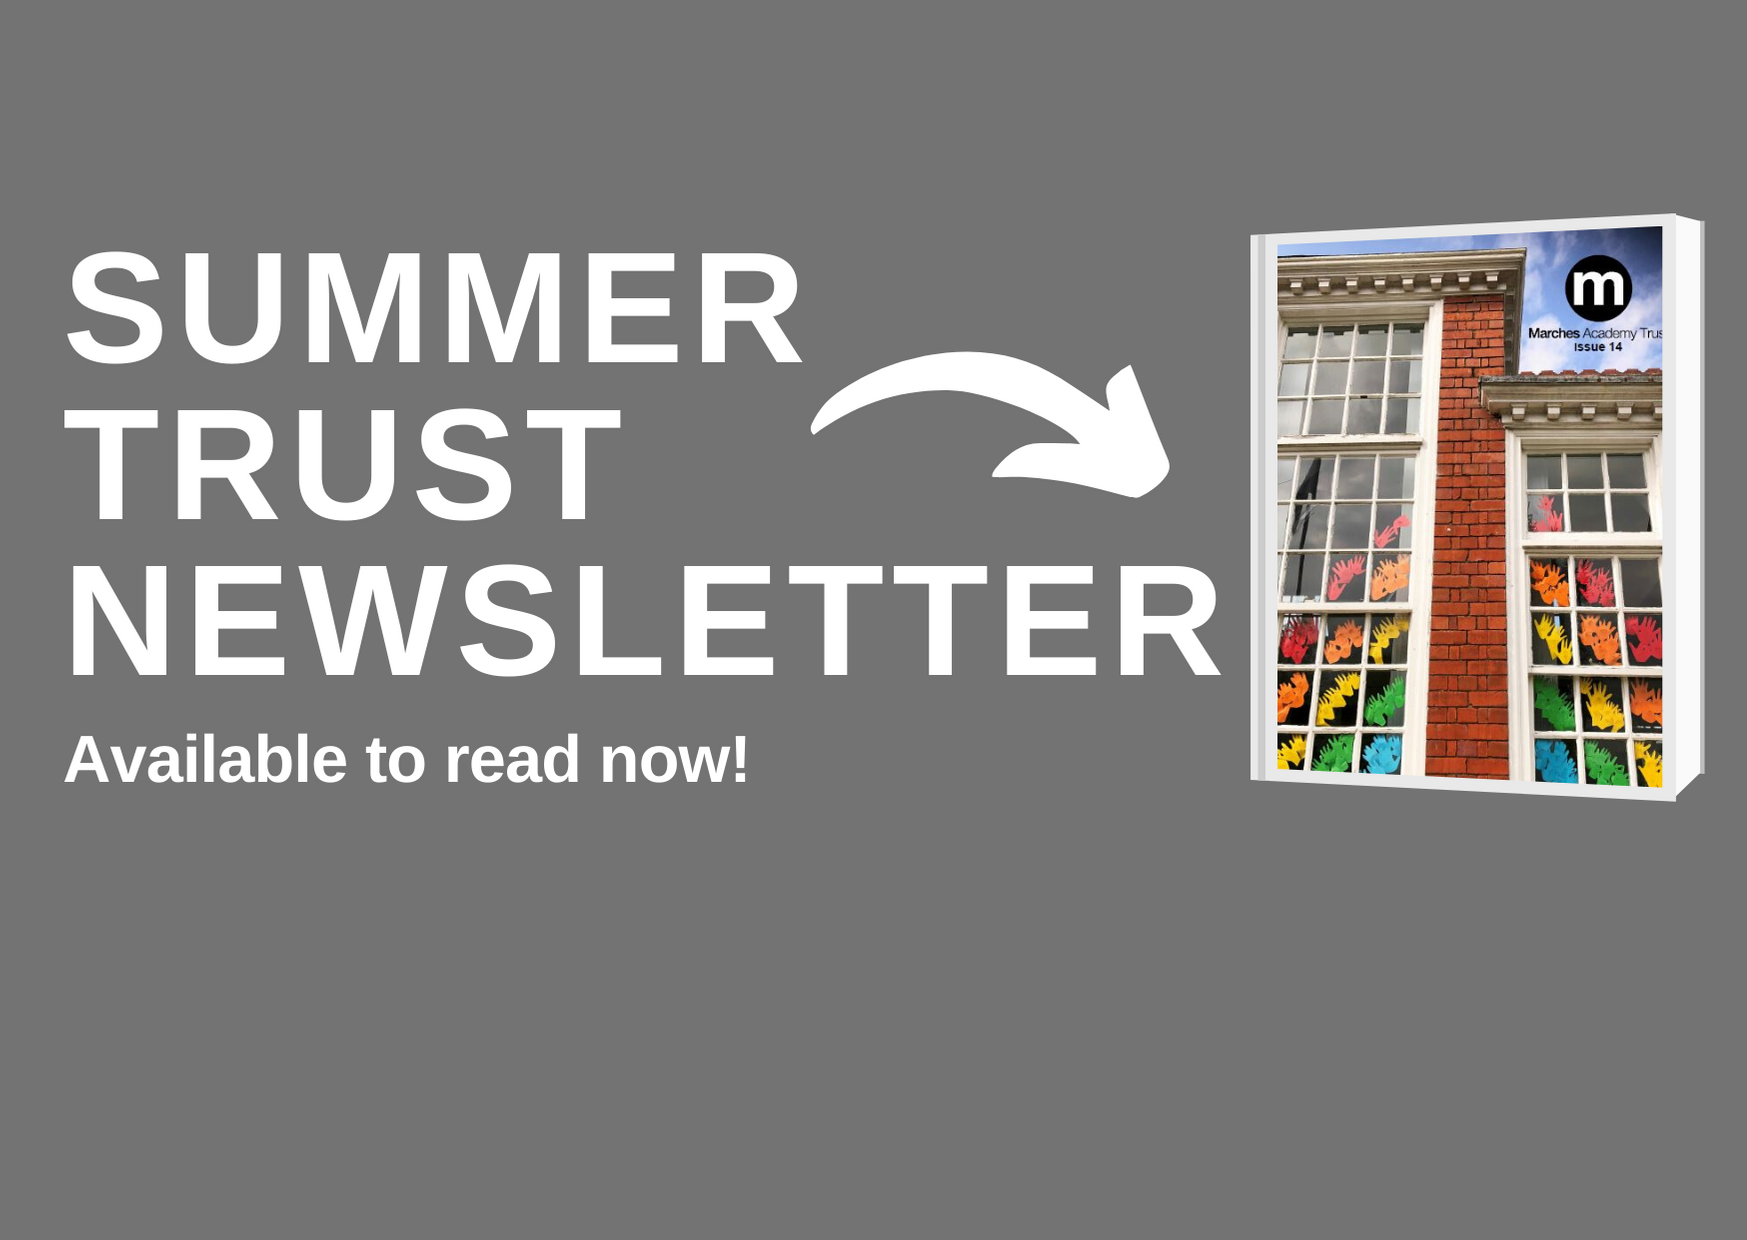 Summer Trust Newsletter